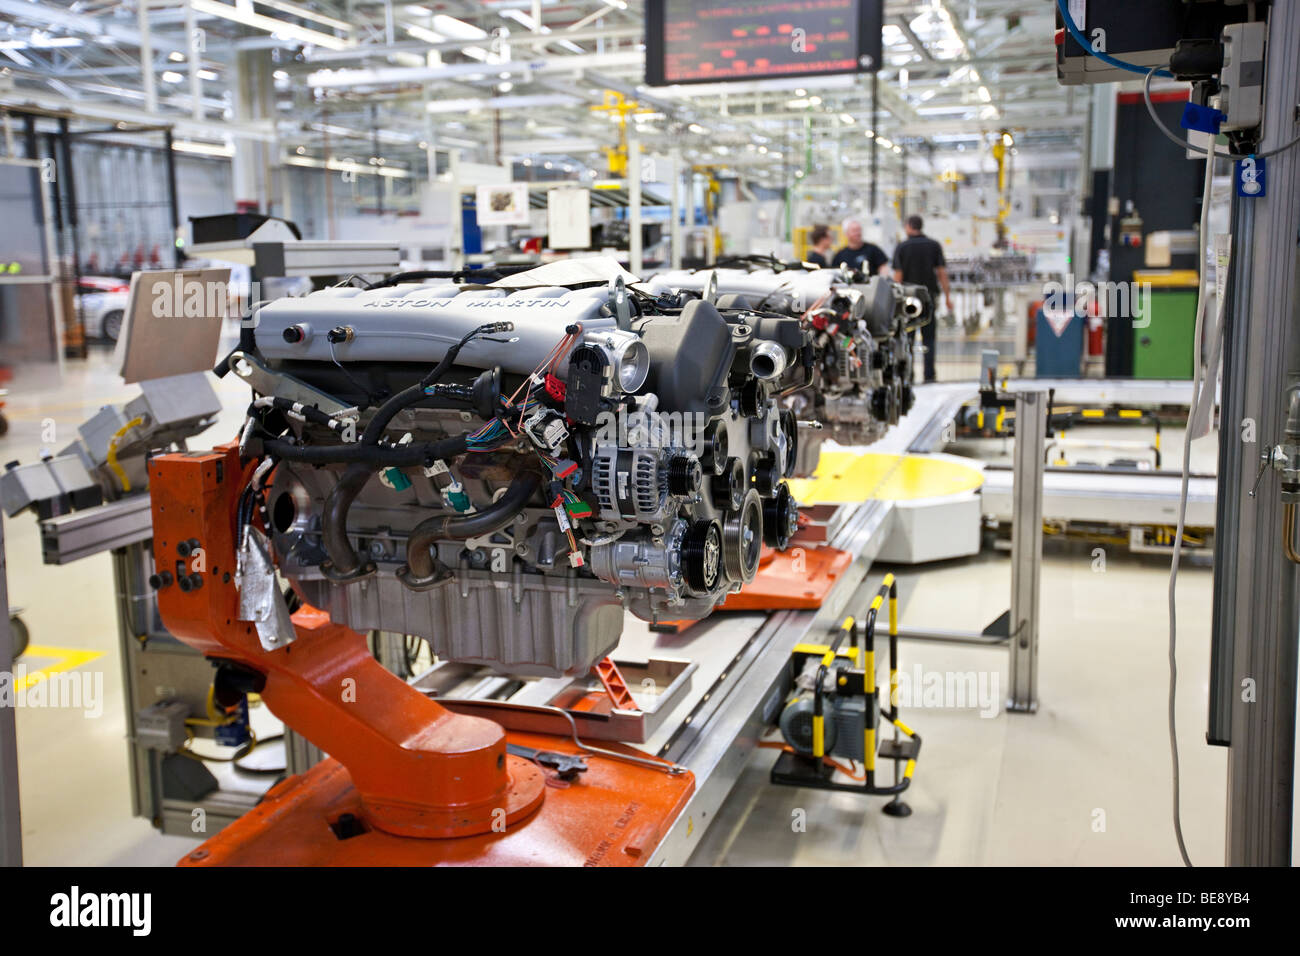 Production of Aston Martin V12 motors, Aston Martin engine plant in Cologne, Rhineland-Palatinate, Germany, Europe - Stock Image